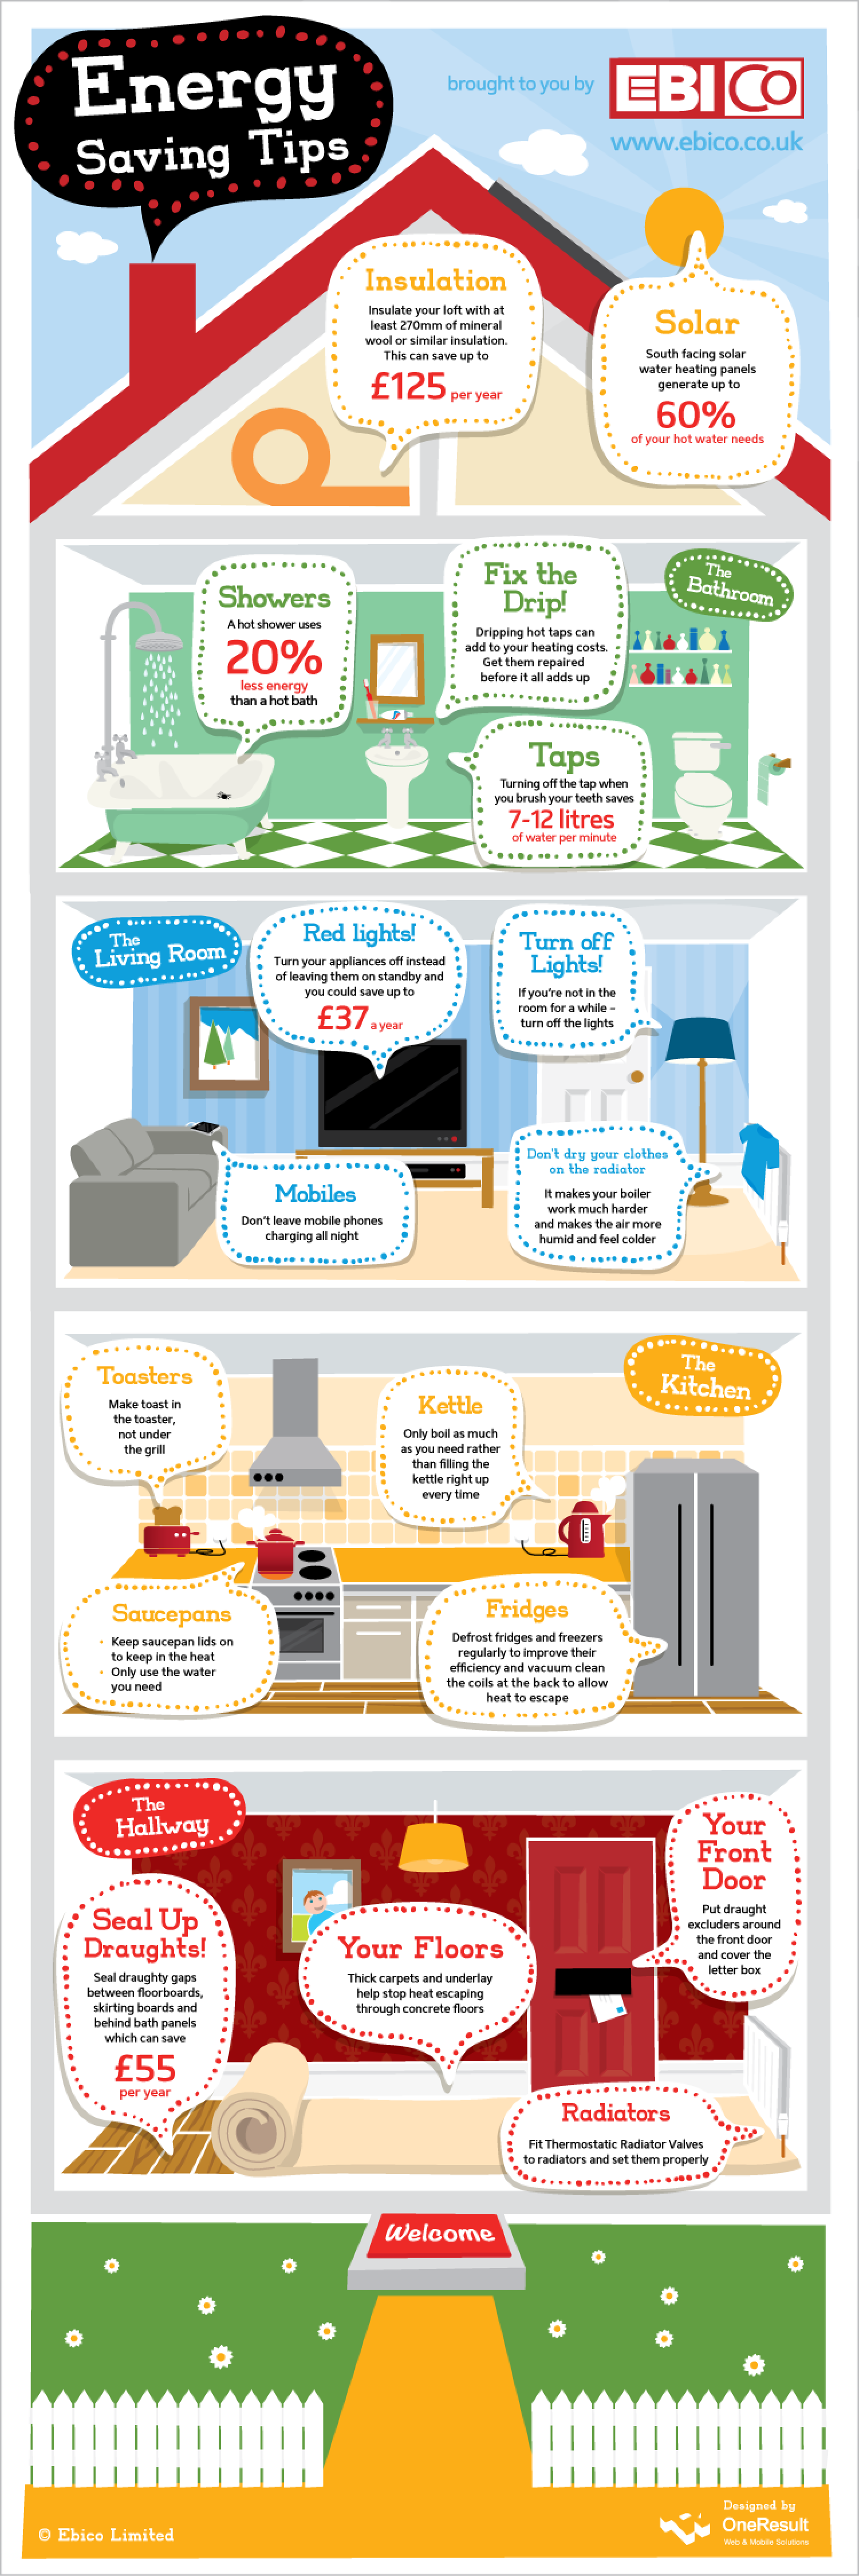 Ebico - Energy Saving Tips Infographic